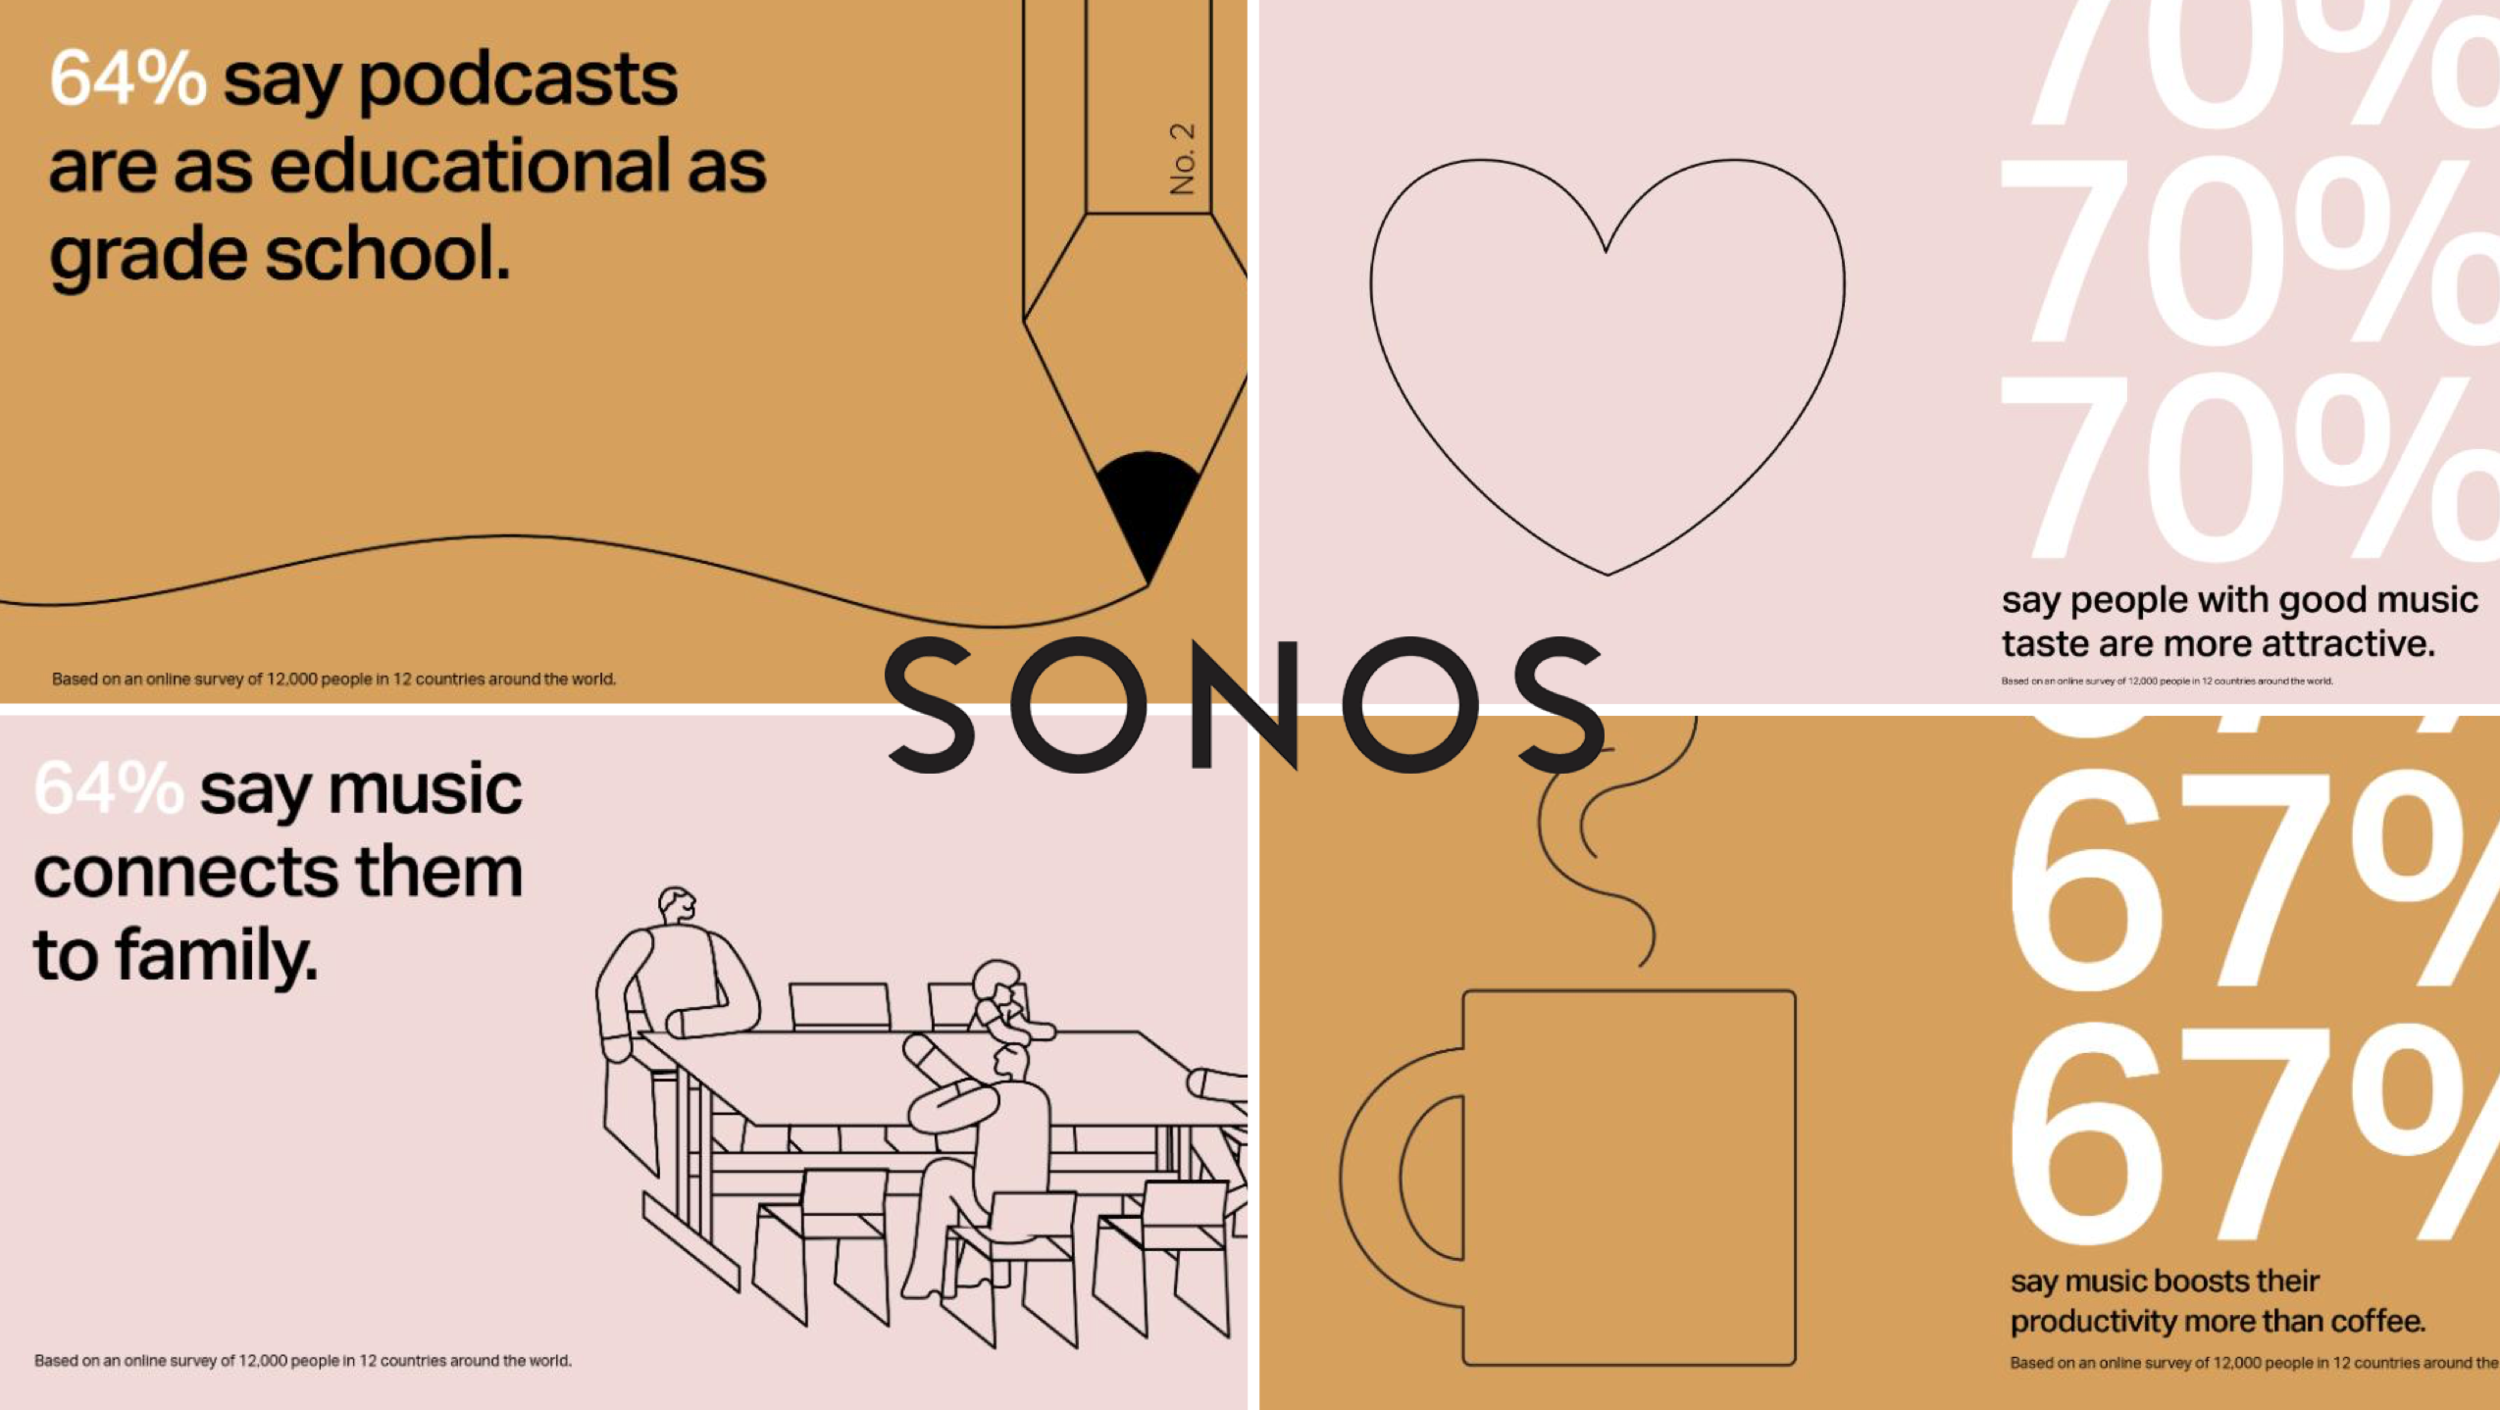 Sonos%20Brilliant%20Sound%20jpeg%20white.png